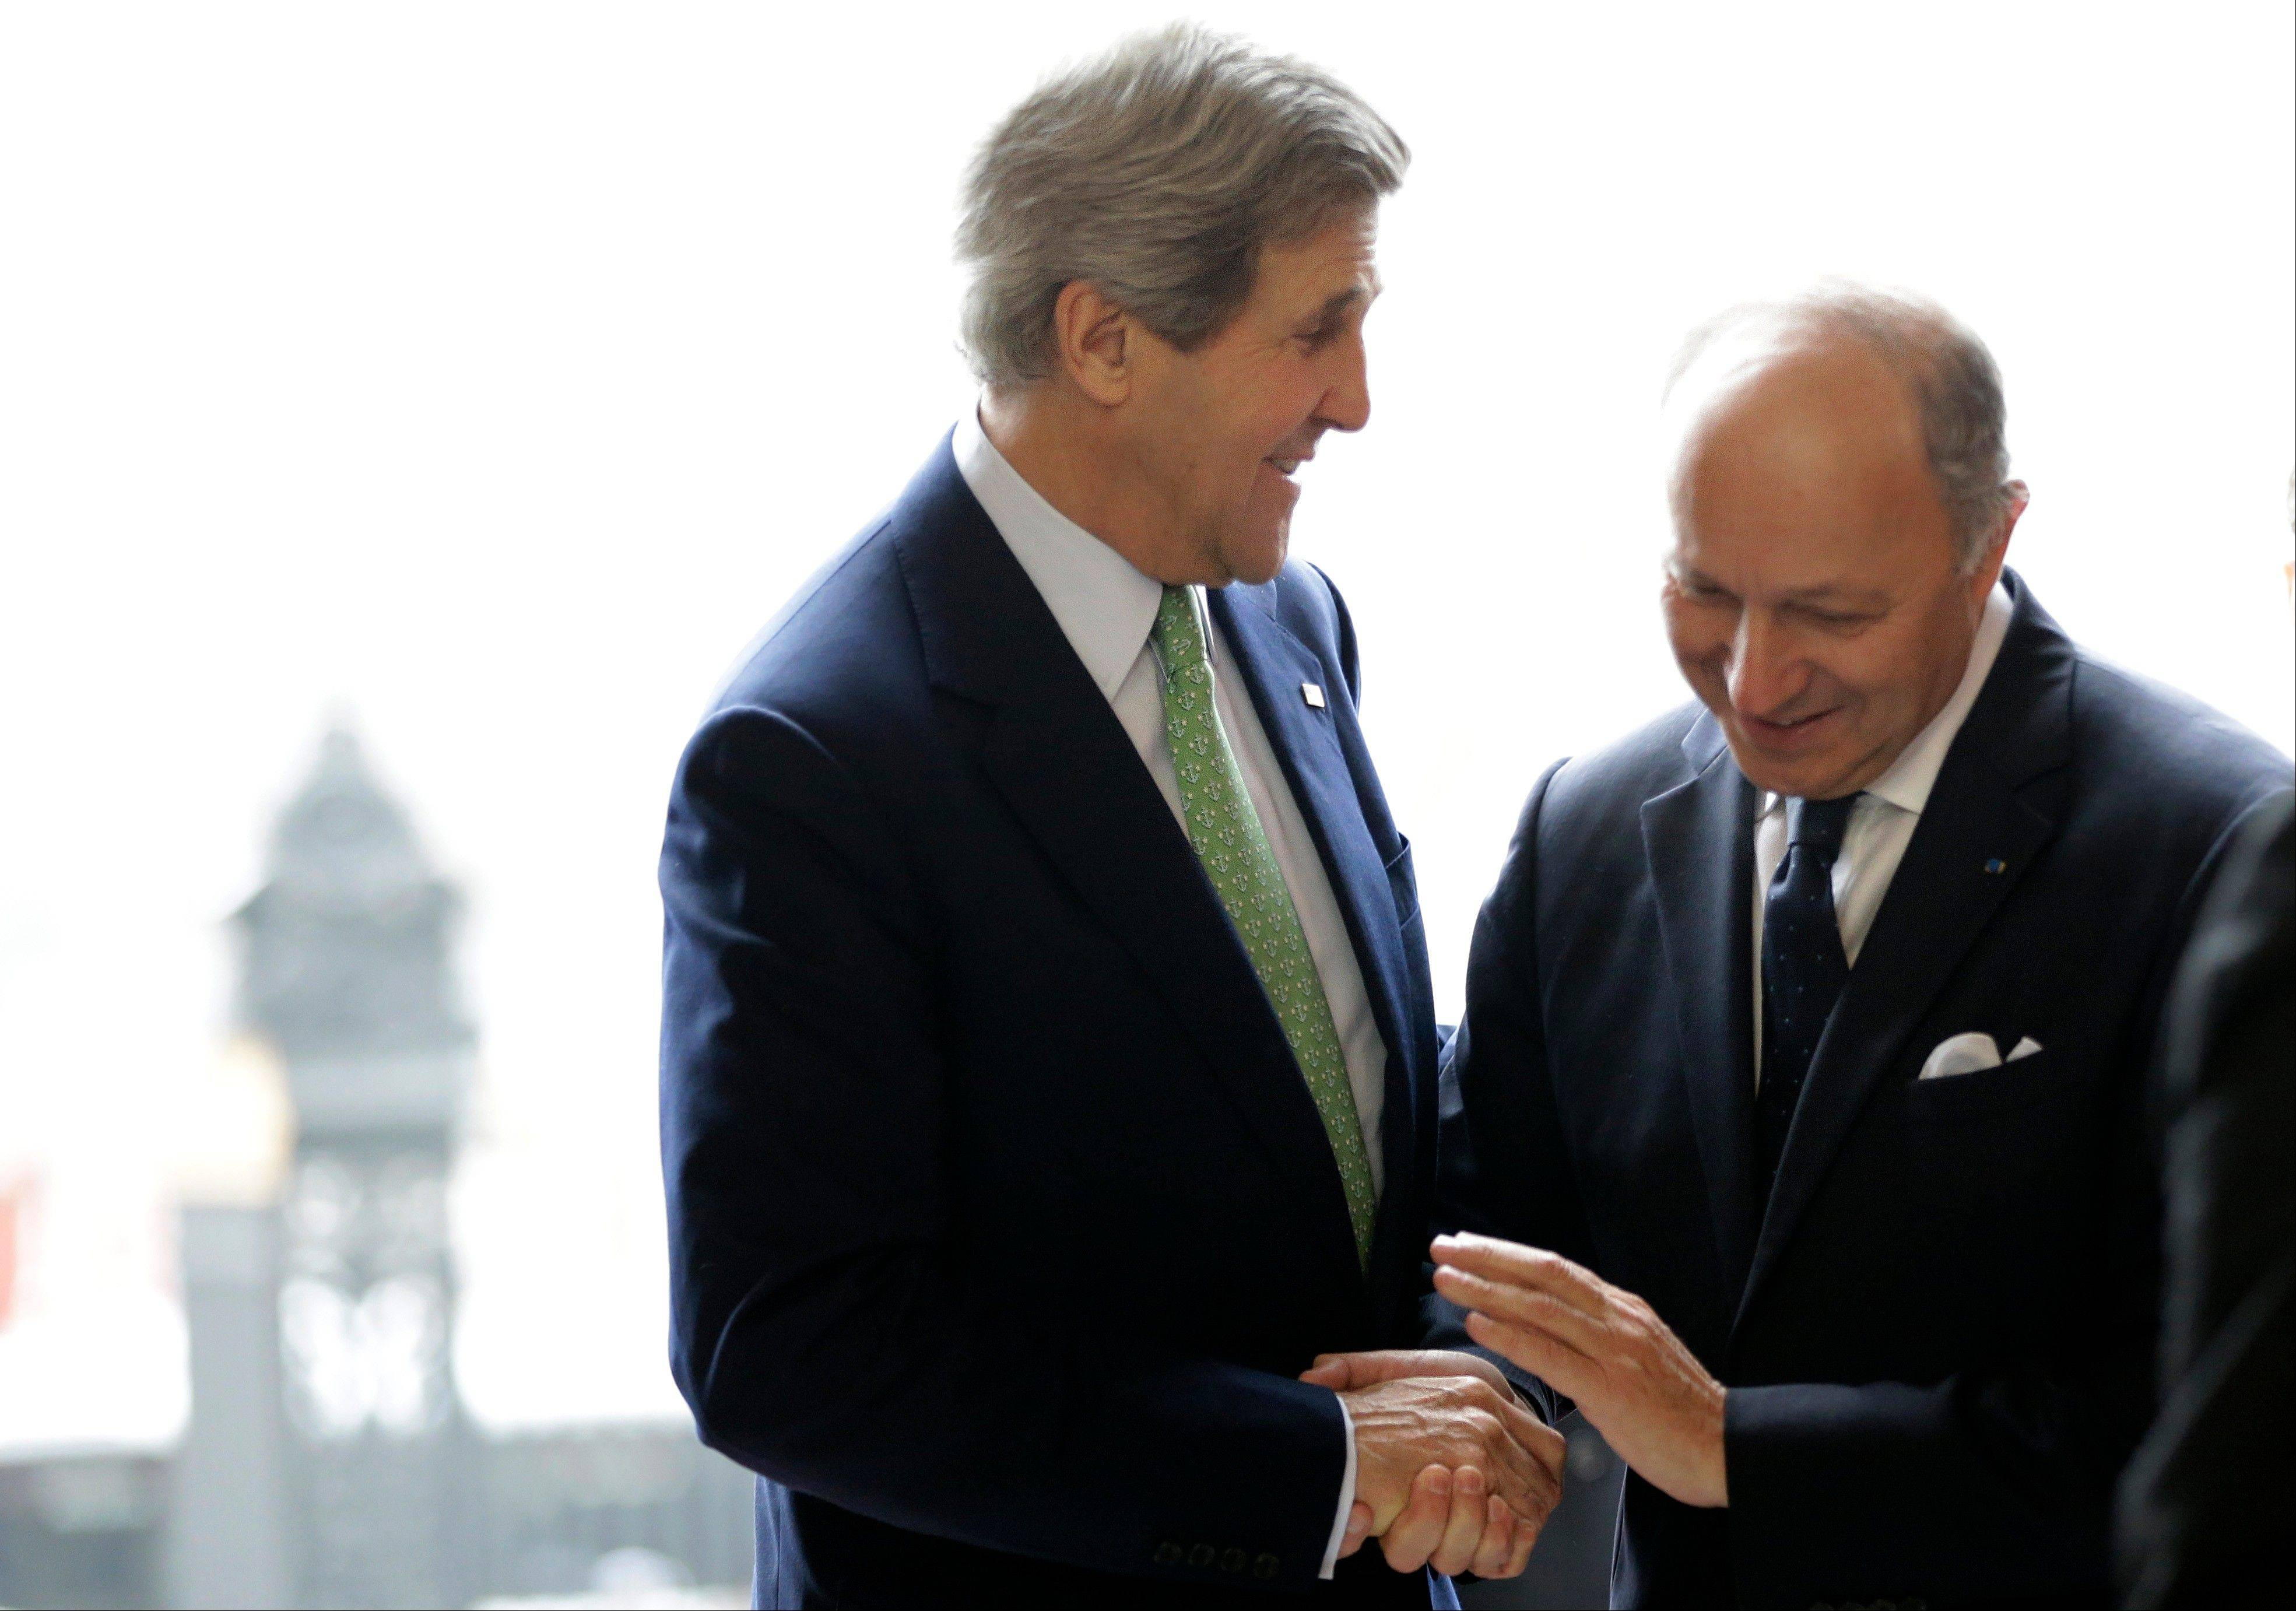 U.S. secretary of state John Kerry, left, is greeted Wednesday by French Minister of Foreign Affairs Laurent Fabius at the Foreign Ministry in Paris. Paris is the third leg of Kerry�s first official overseas trip, a hectic nine-day dash through Europe and the Middle East.